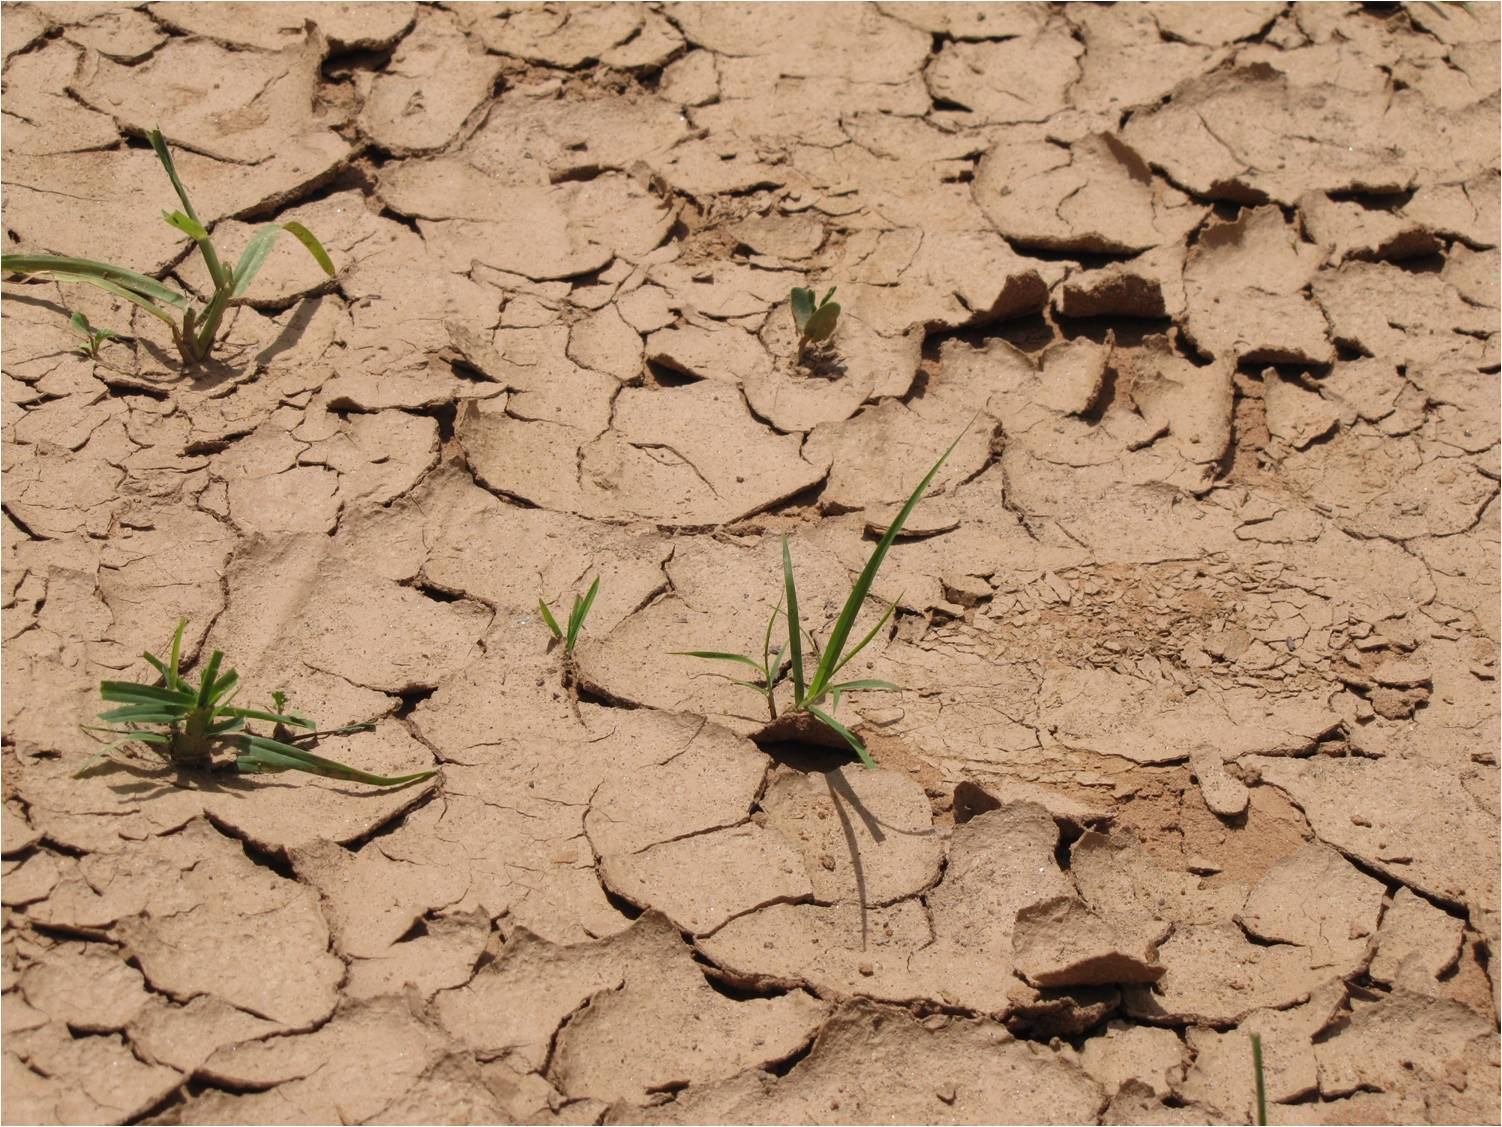 http://climatechange.terra-justa.org/blog/2012/03/28/droughts-are-about/